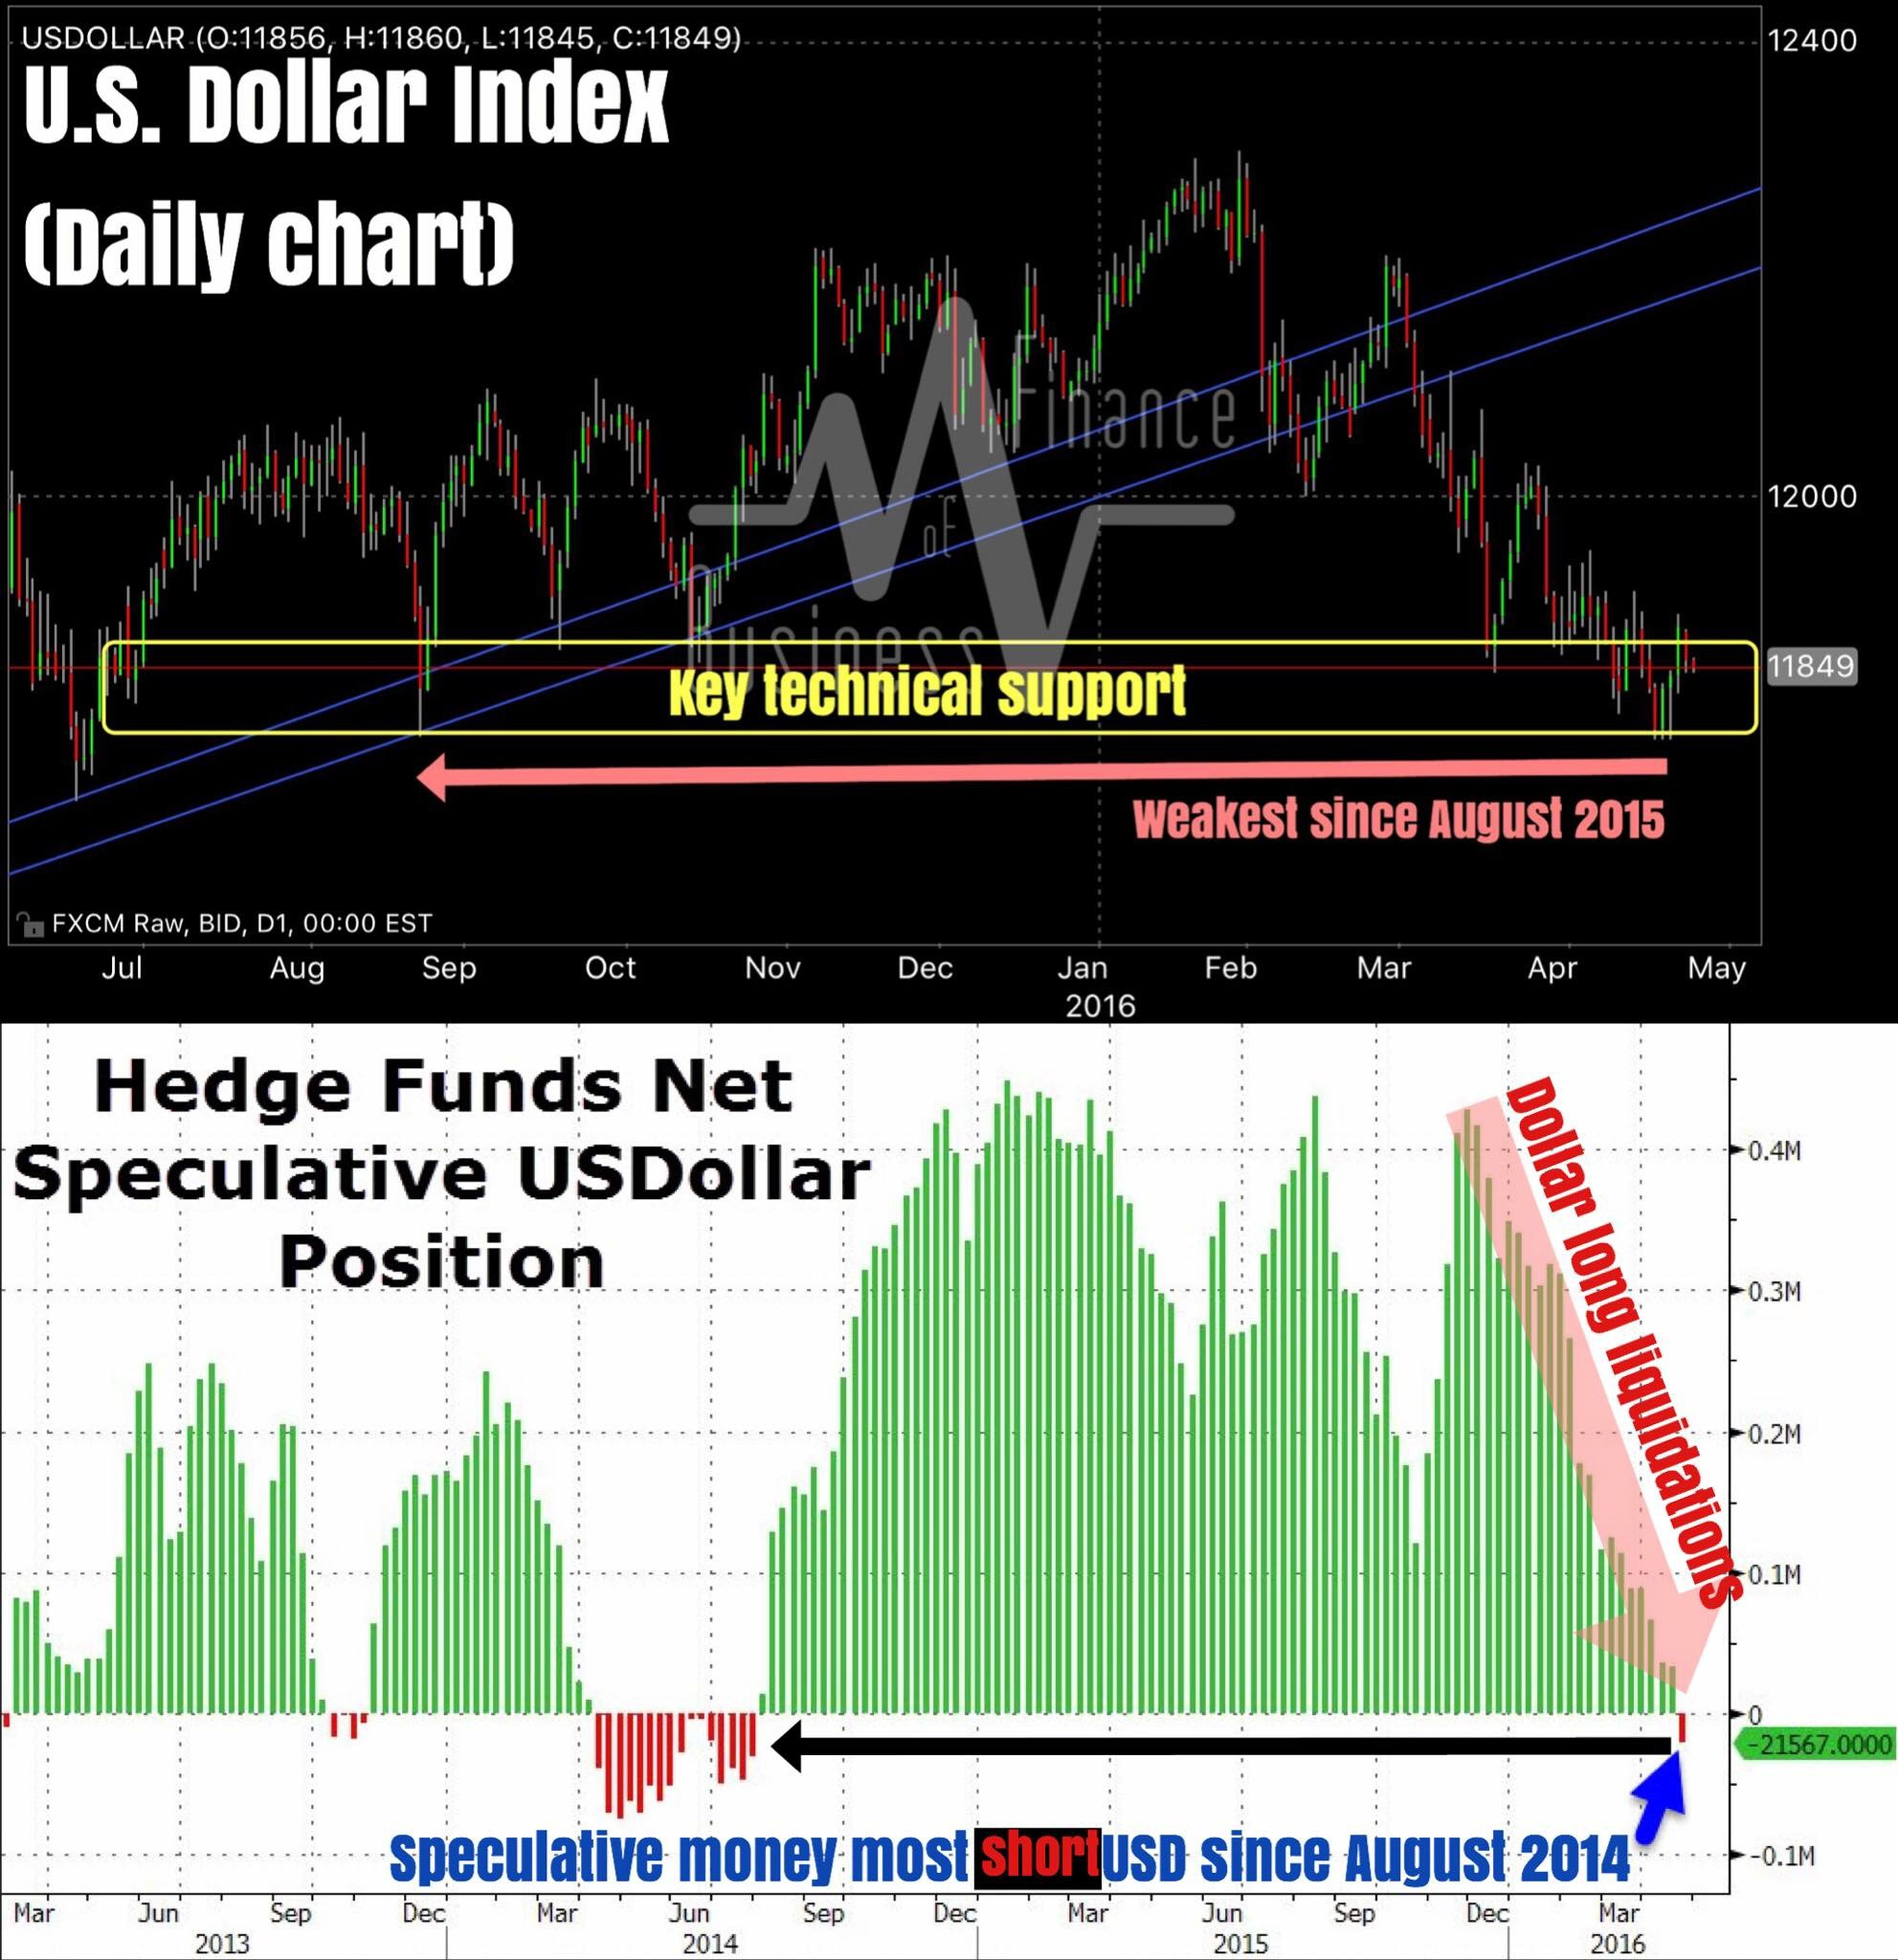 """""""Time to be wary about being short the dollar? Perhaps.    Technically, we are at a key support area on the DXY (dollar index), which has yet to be cleared on the downside.    Adding to that, speculative positioning has turned net short USD for the first time since August 2014. In other words, speculative (momentum chasing) money is the most short USD since almost 2 years ago. Much of dollar weakness has been the result of USD long liquidation as seen from positioning data. Will the opposite be true now? Is a short squeeze imminent?    The answer may lie with today's April FOMC statement due in 2 hours.""""    Business Of Finance on Facebook, 28 April 2016"""